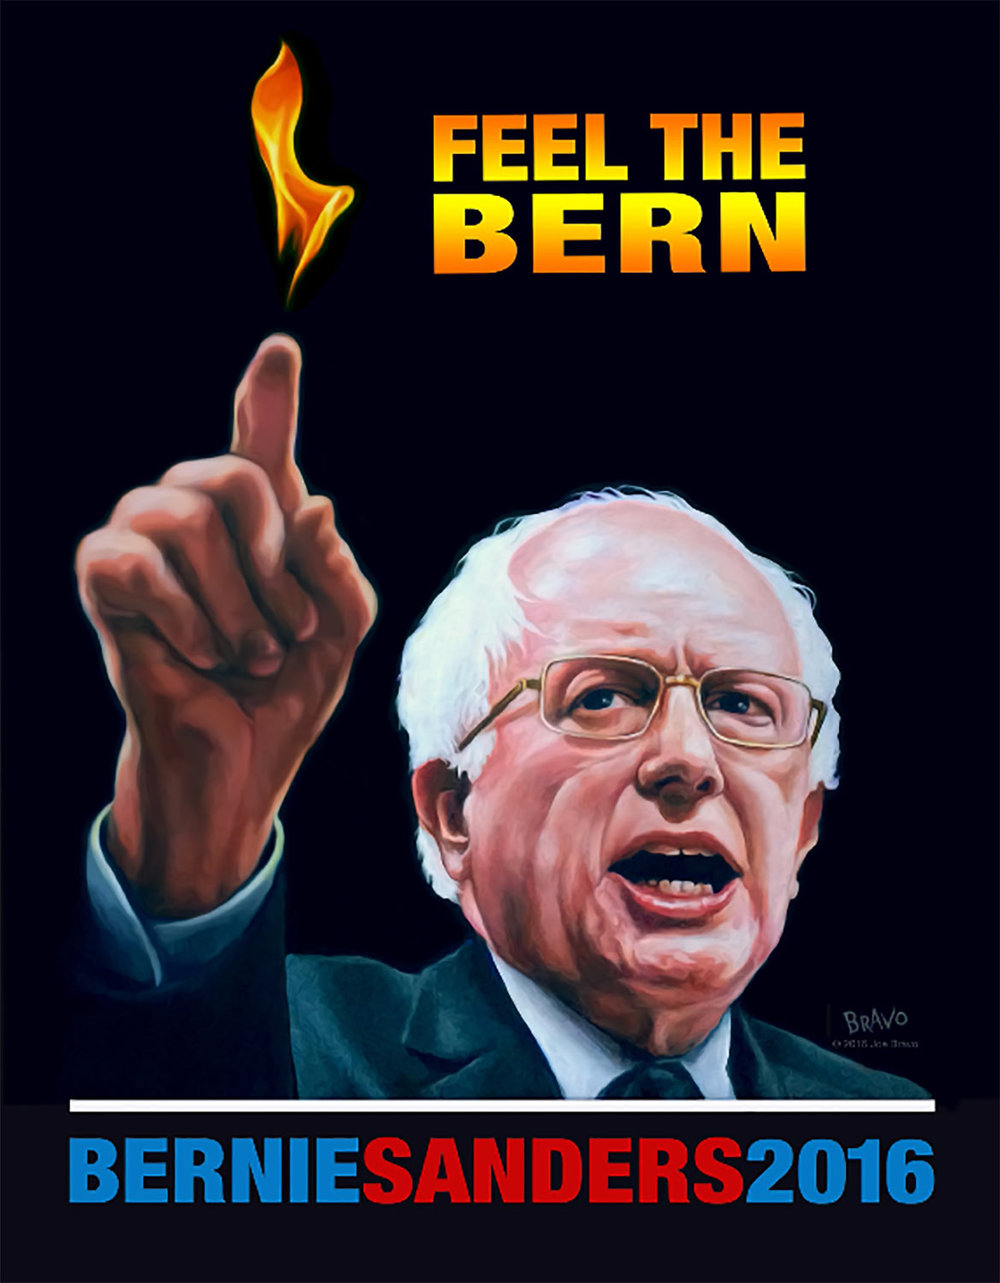 "B3 Joe Bravo, Feel the Bern, 2016 Acrylic on canvas 18x24"" Printed Poster 18""x24"""